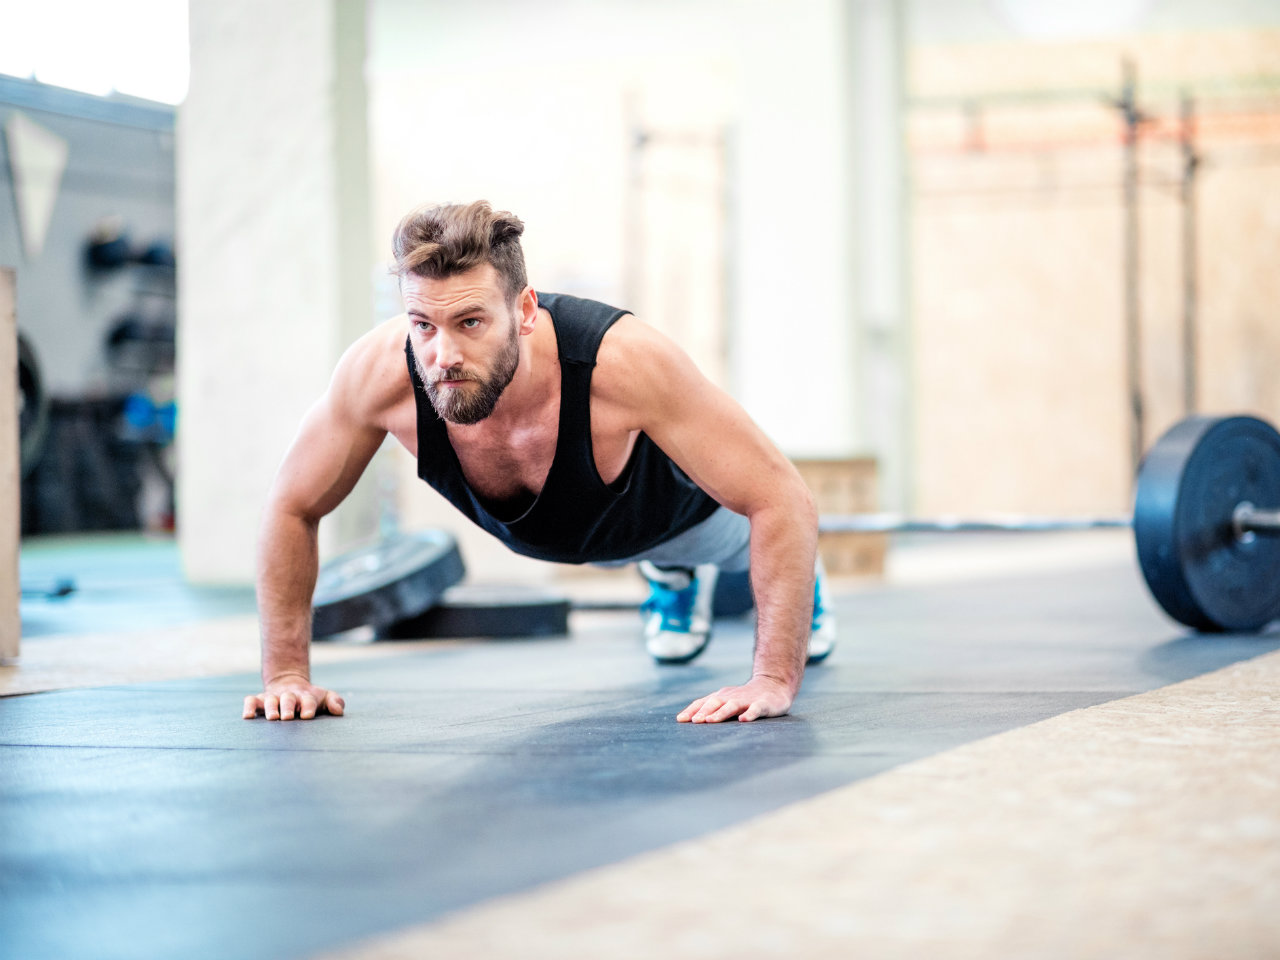 The 10-minute holiday workout routine